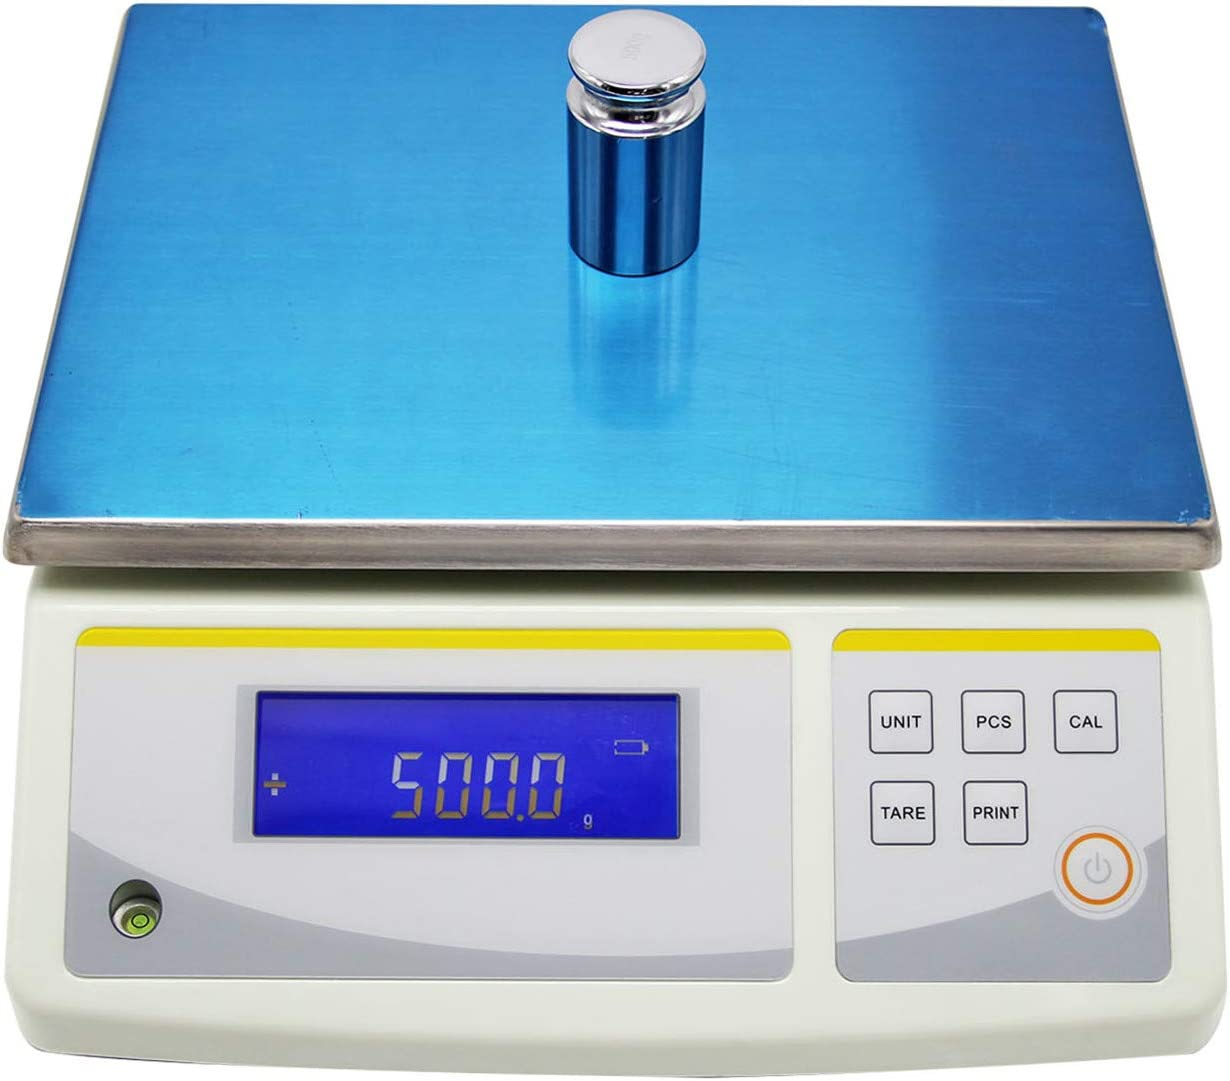 Fixed price for sale CGOLDENWALL 30kg 0.1g Large Range Scale Inexpensive Professional Lab E